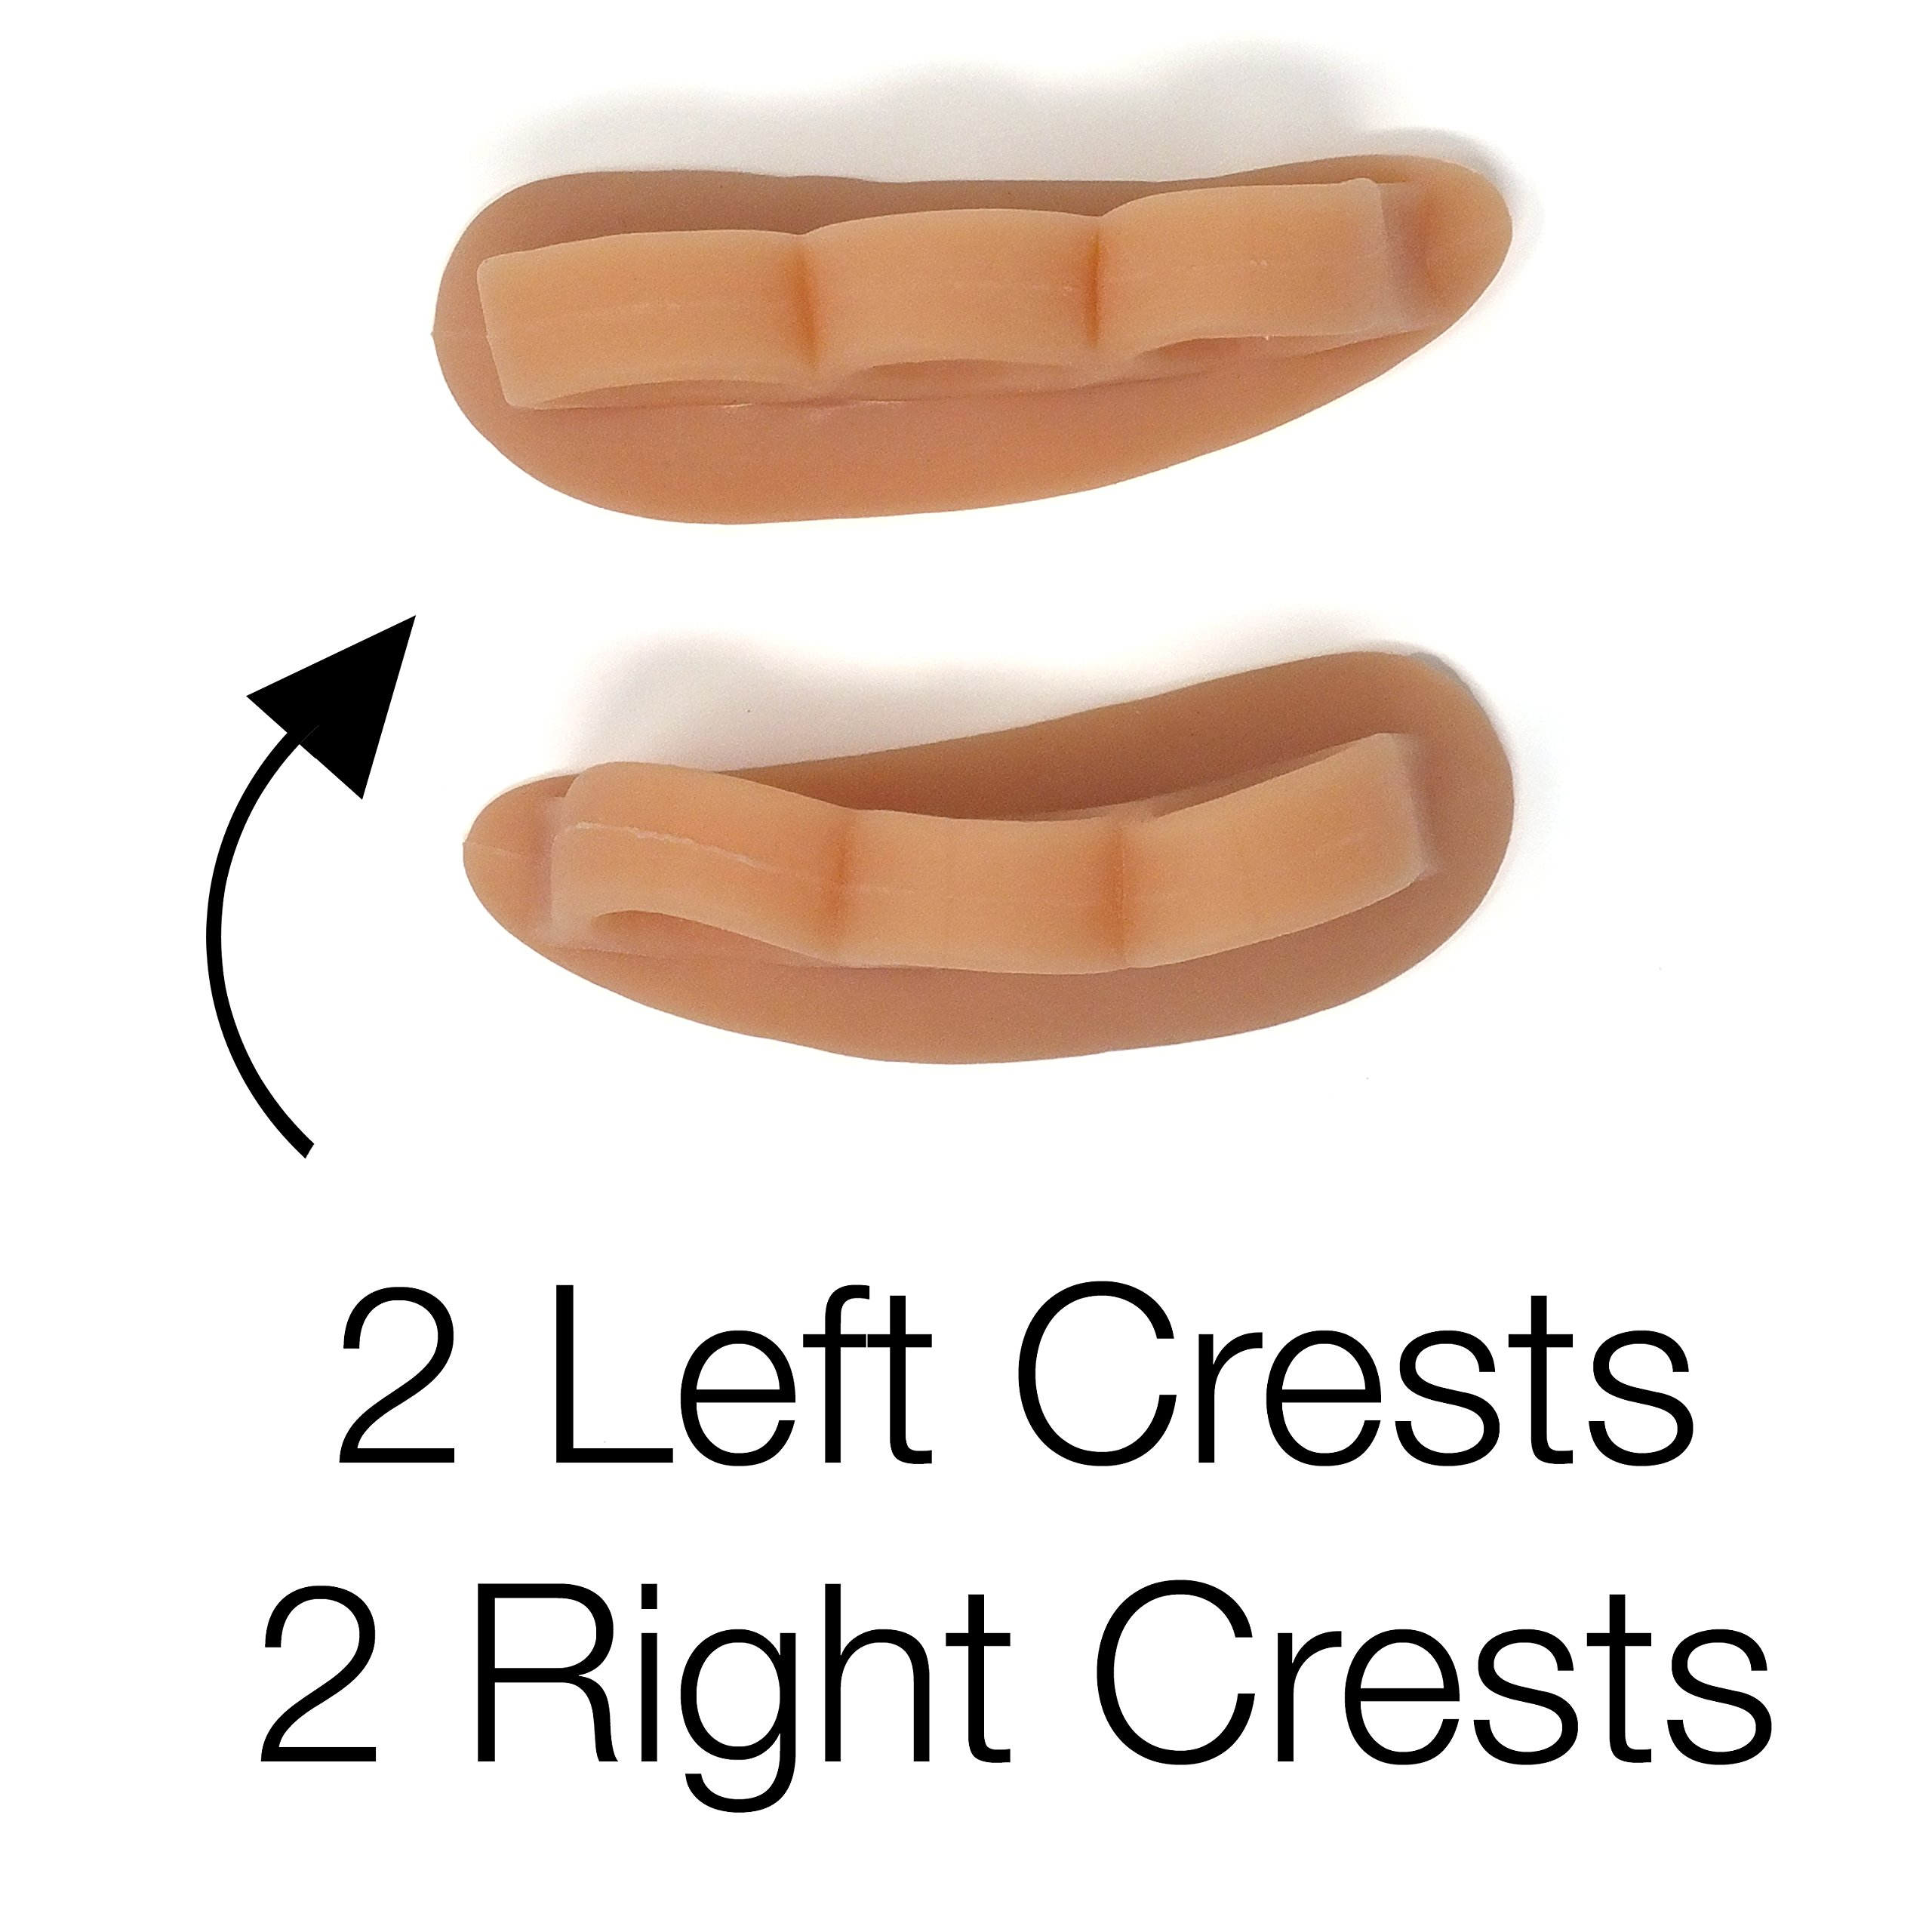 ZenToes Hammer Toe Straightener and Corrector 4 Pack Soft Gel Crests Splints | Reduce Foot Pain, Prevent Overlap | Flexible Footcare Treatment | Stain, Odor Resistant (Beige) by ZenToes (Image #4)